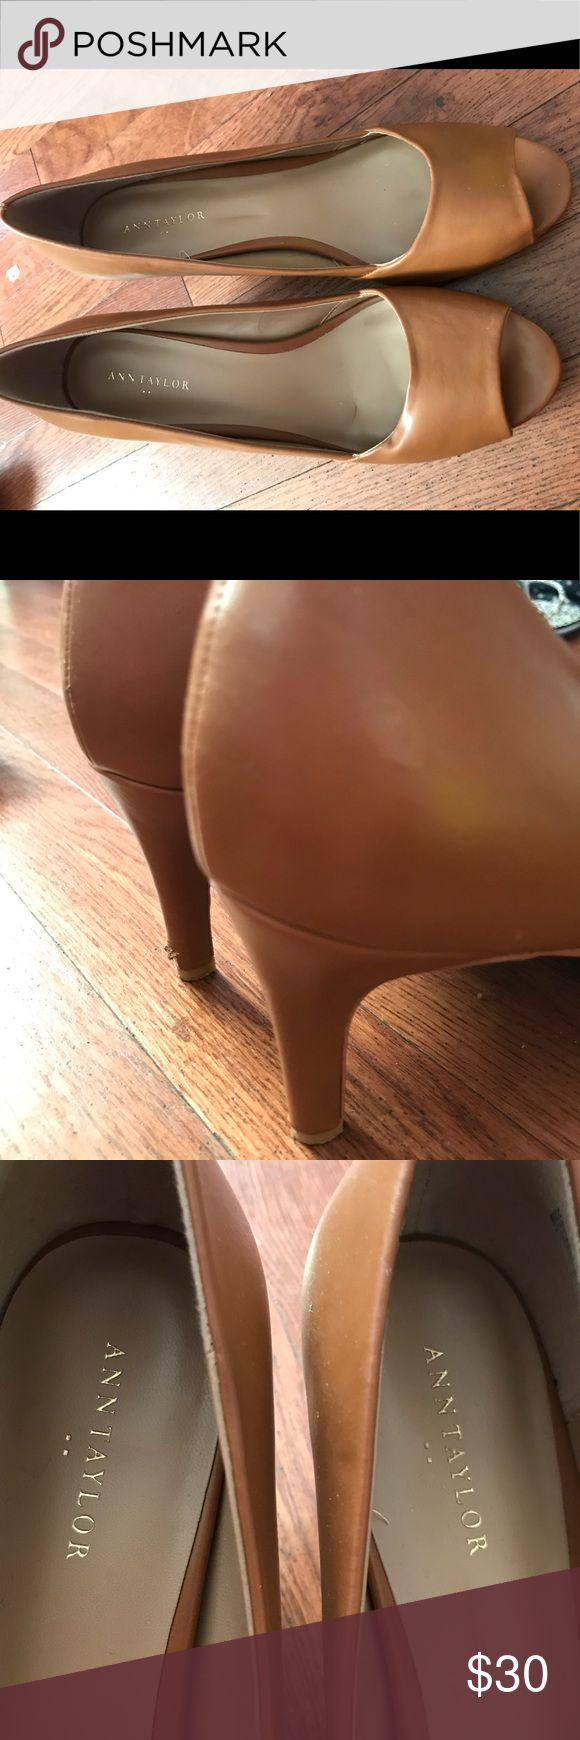 Ann Taylor Peep Toe Heels, Brown Ann Taylor peep toe heels worn a handful of times for Speech and Debate competitions! They are classy and professional heels and fit like a glove! Great condition! Ann Taylor Shoes Heels